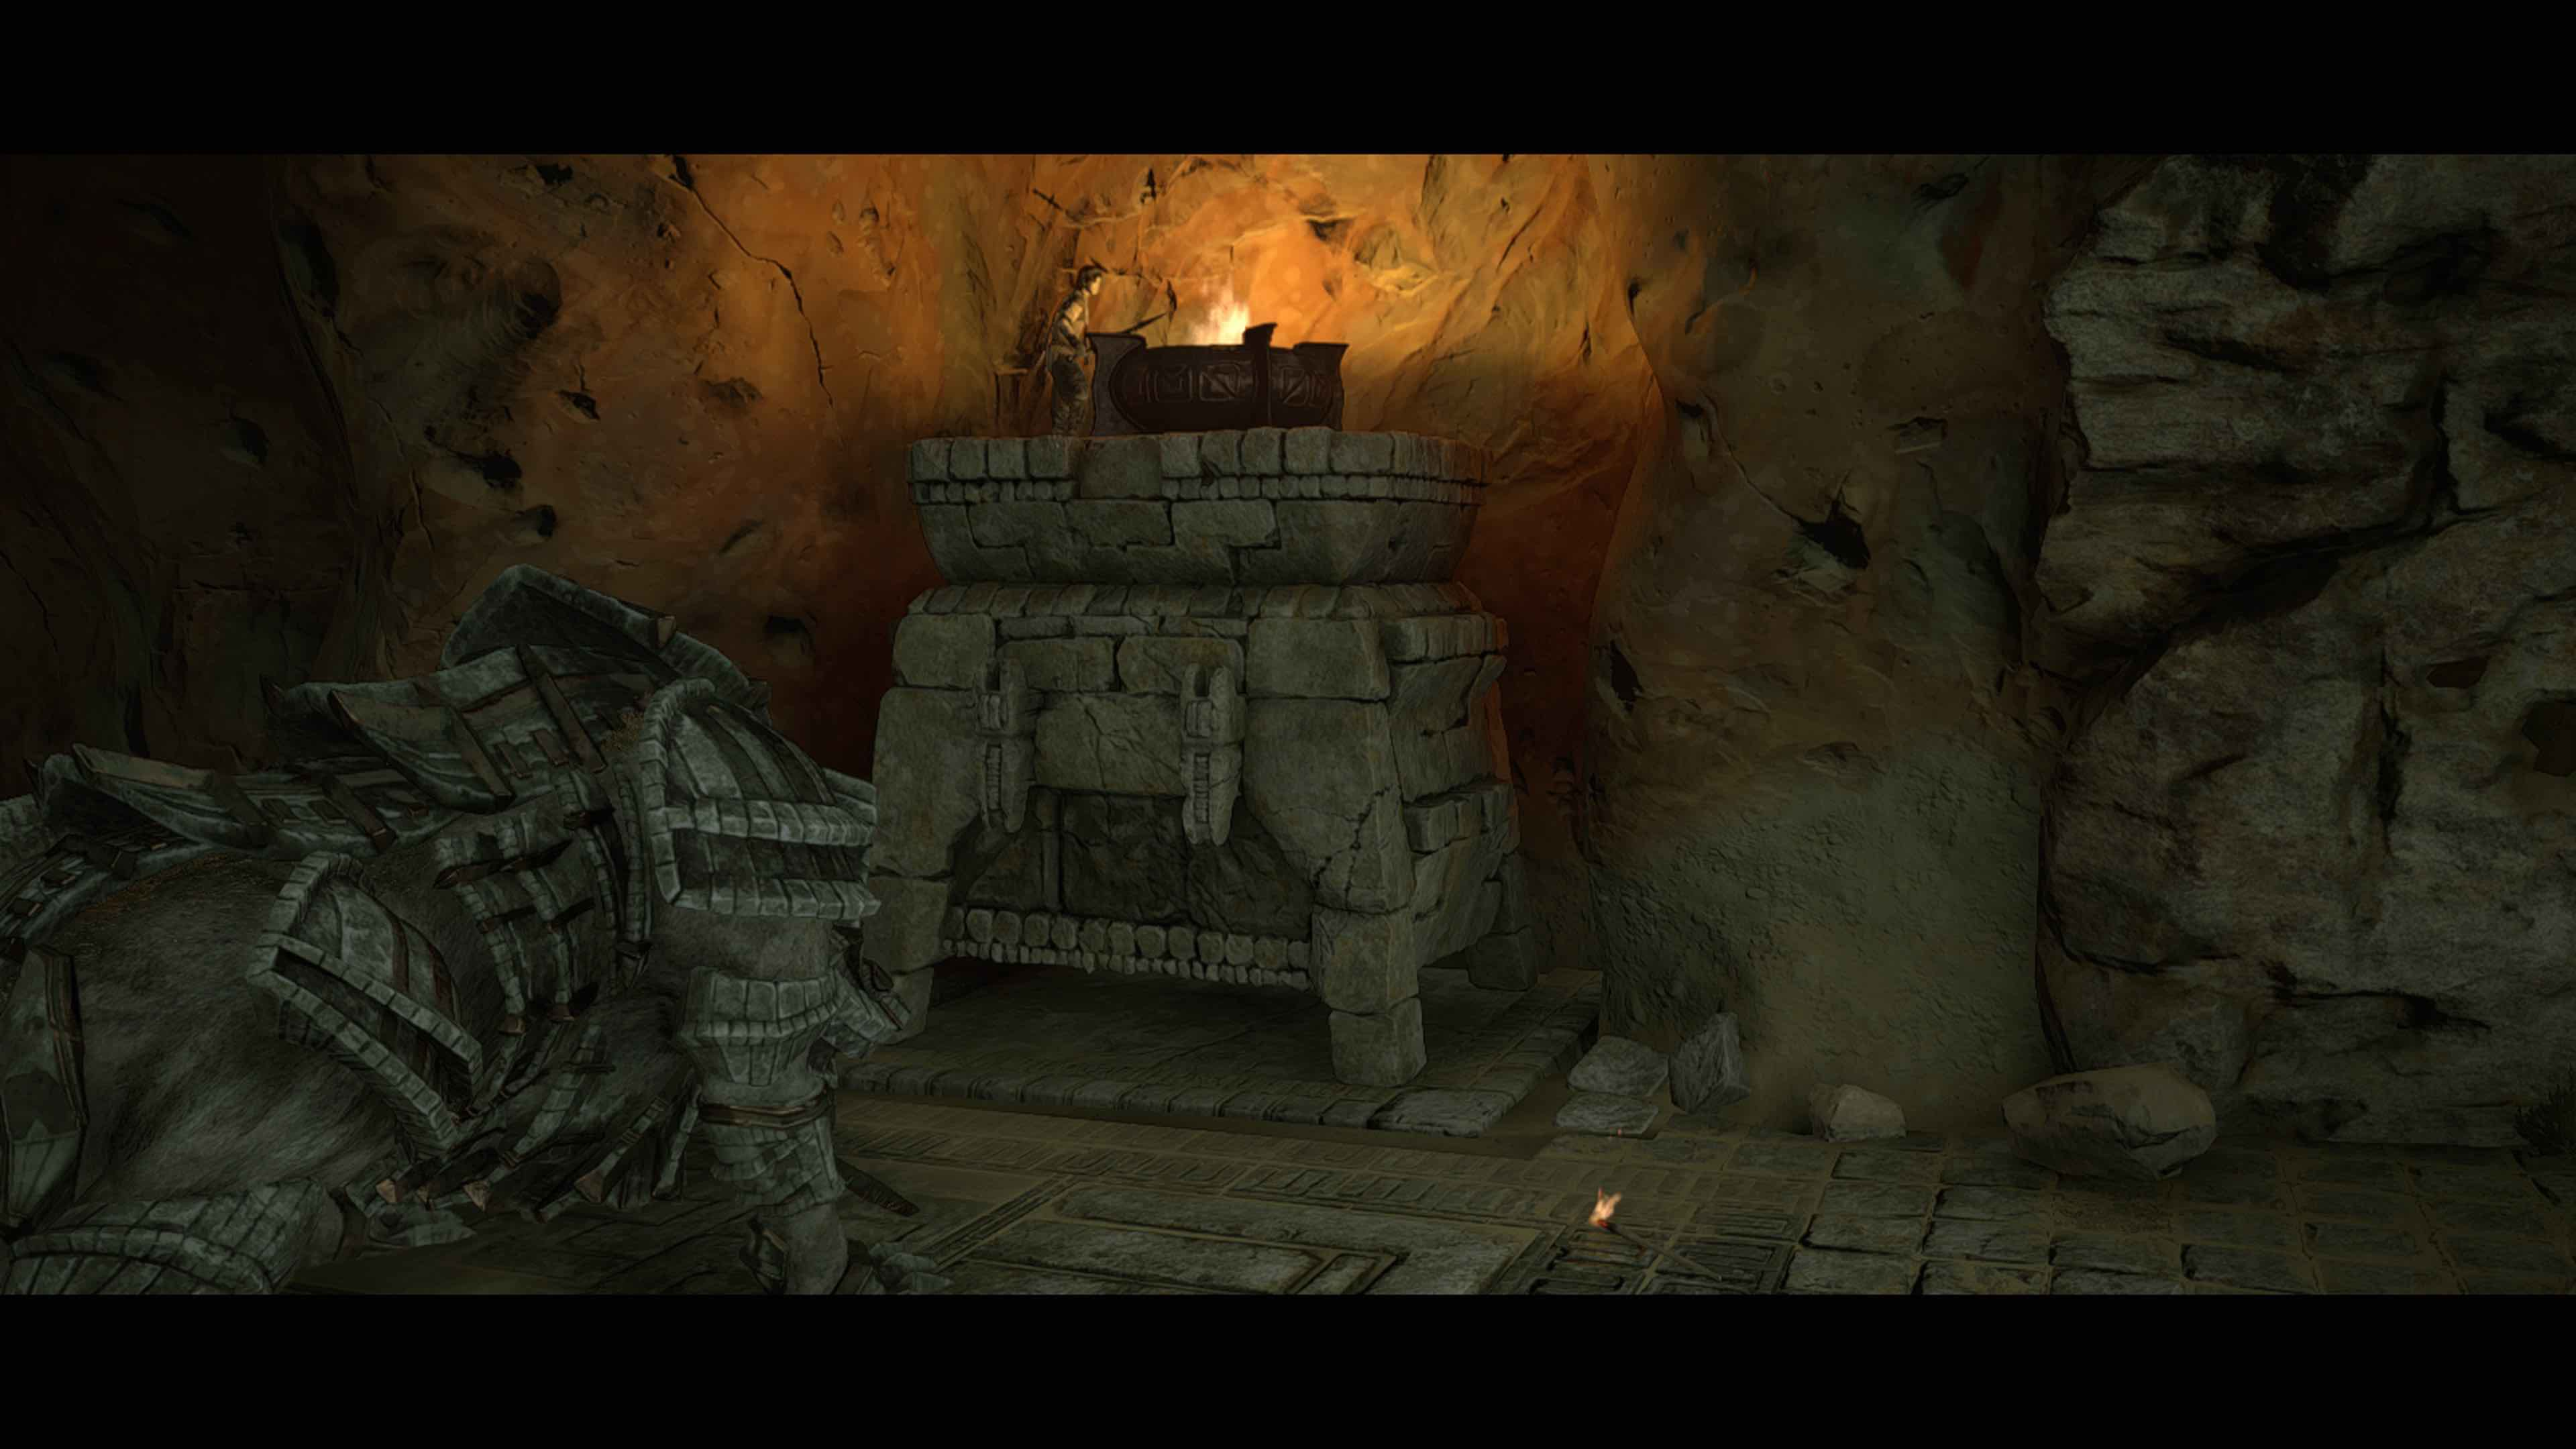 Shadow_of_the_Colossus_Coloso_11_3